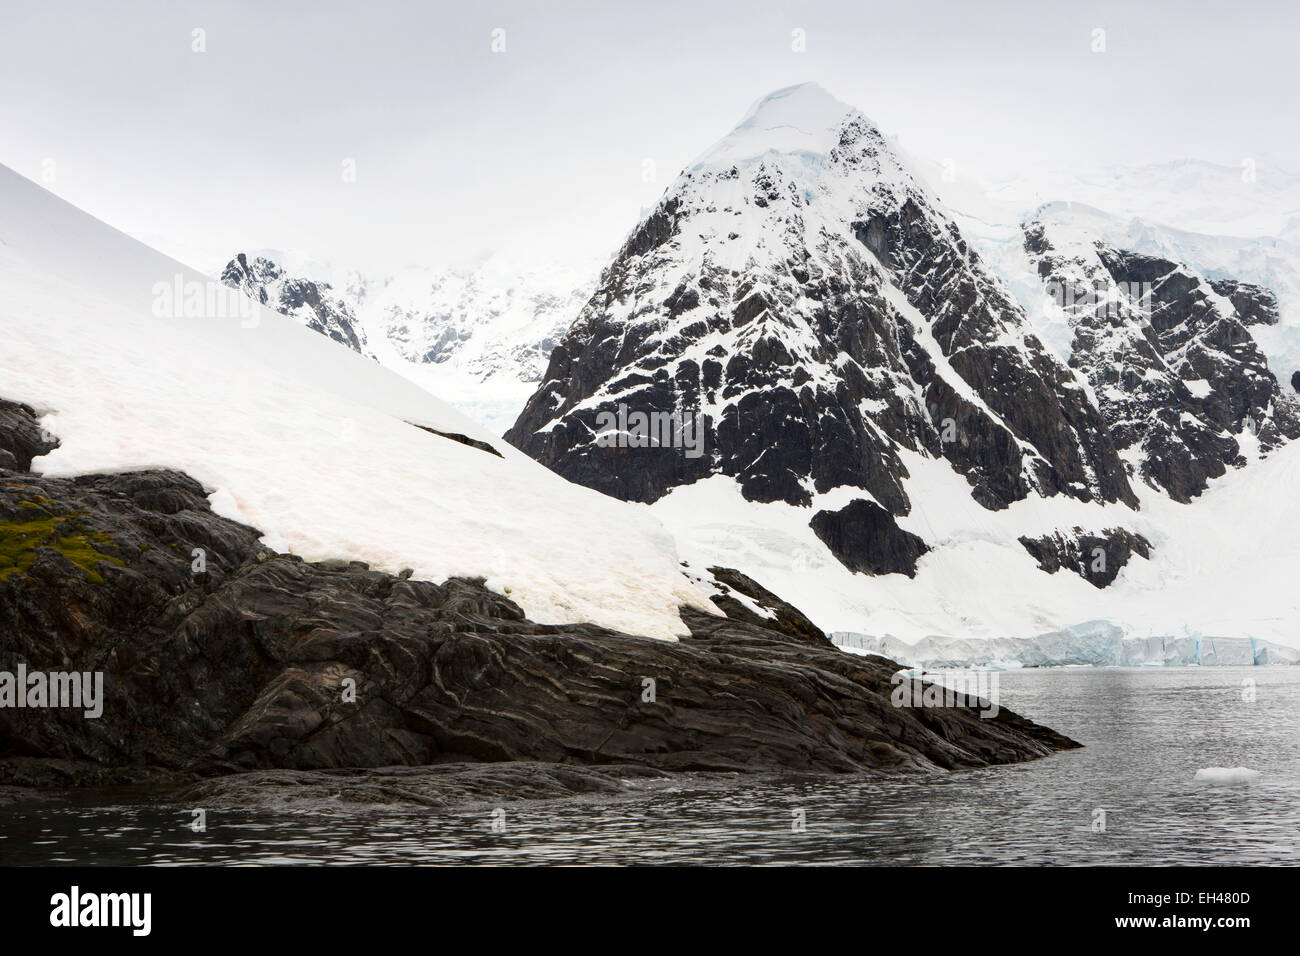 Antarctica, Paradise Bay, snow clad mountain above glacier - Stock Image